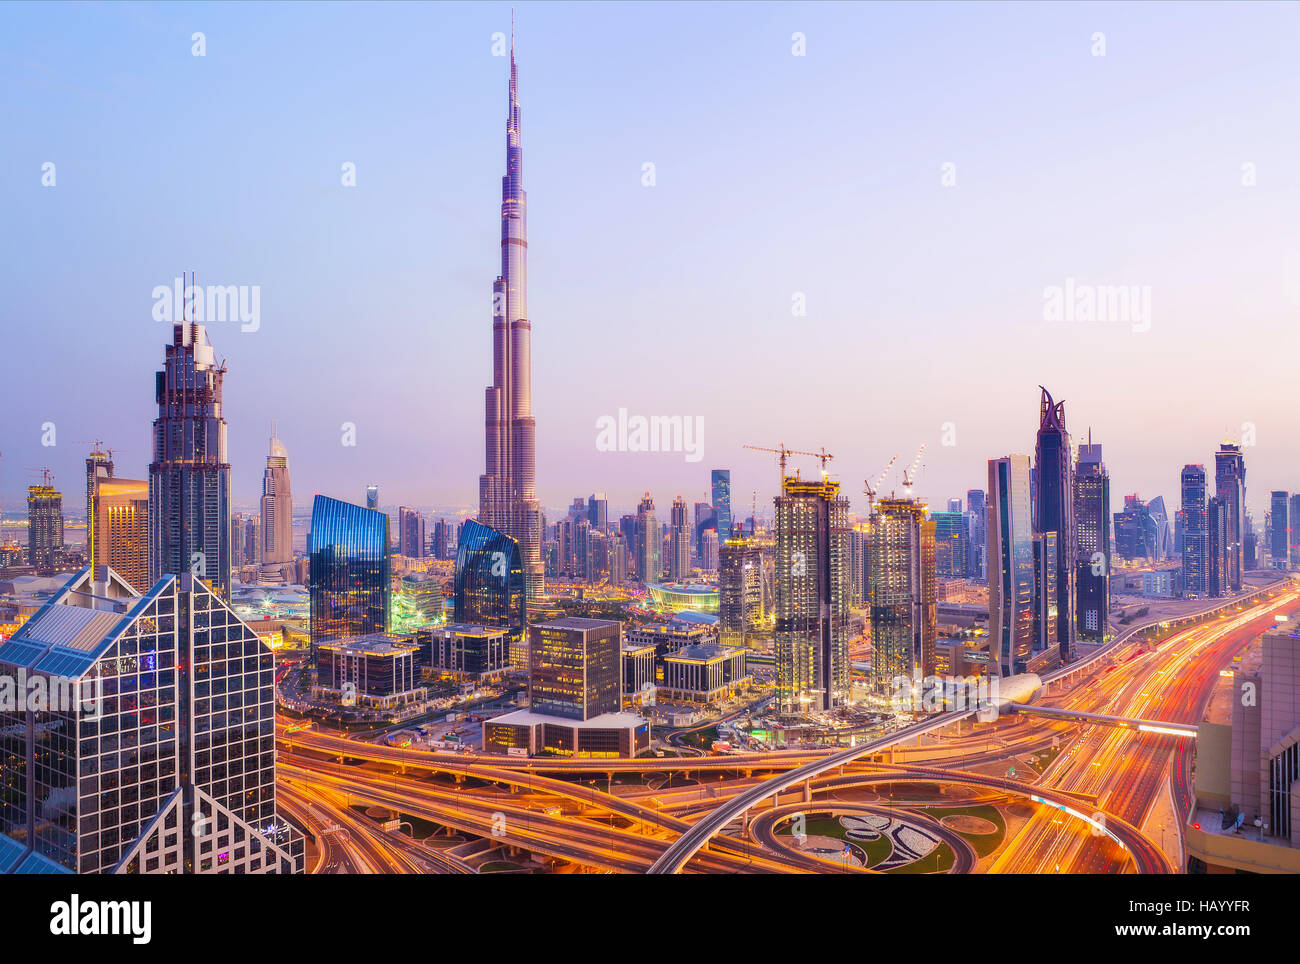 View on modern skyscrapers and busy evening highways in luxury Dubai city,Dubai,United Arab Emirates Stock Photo